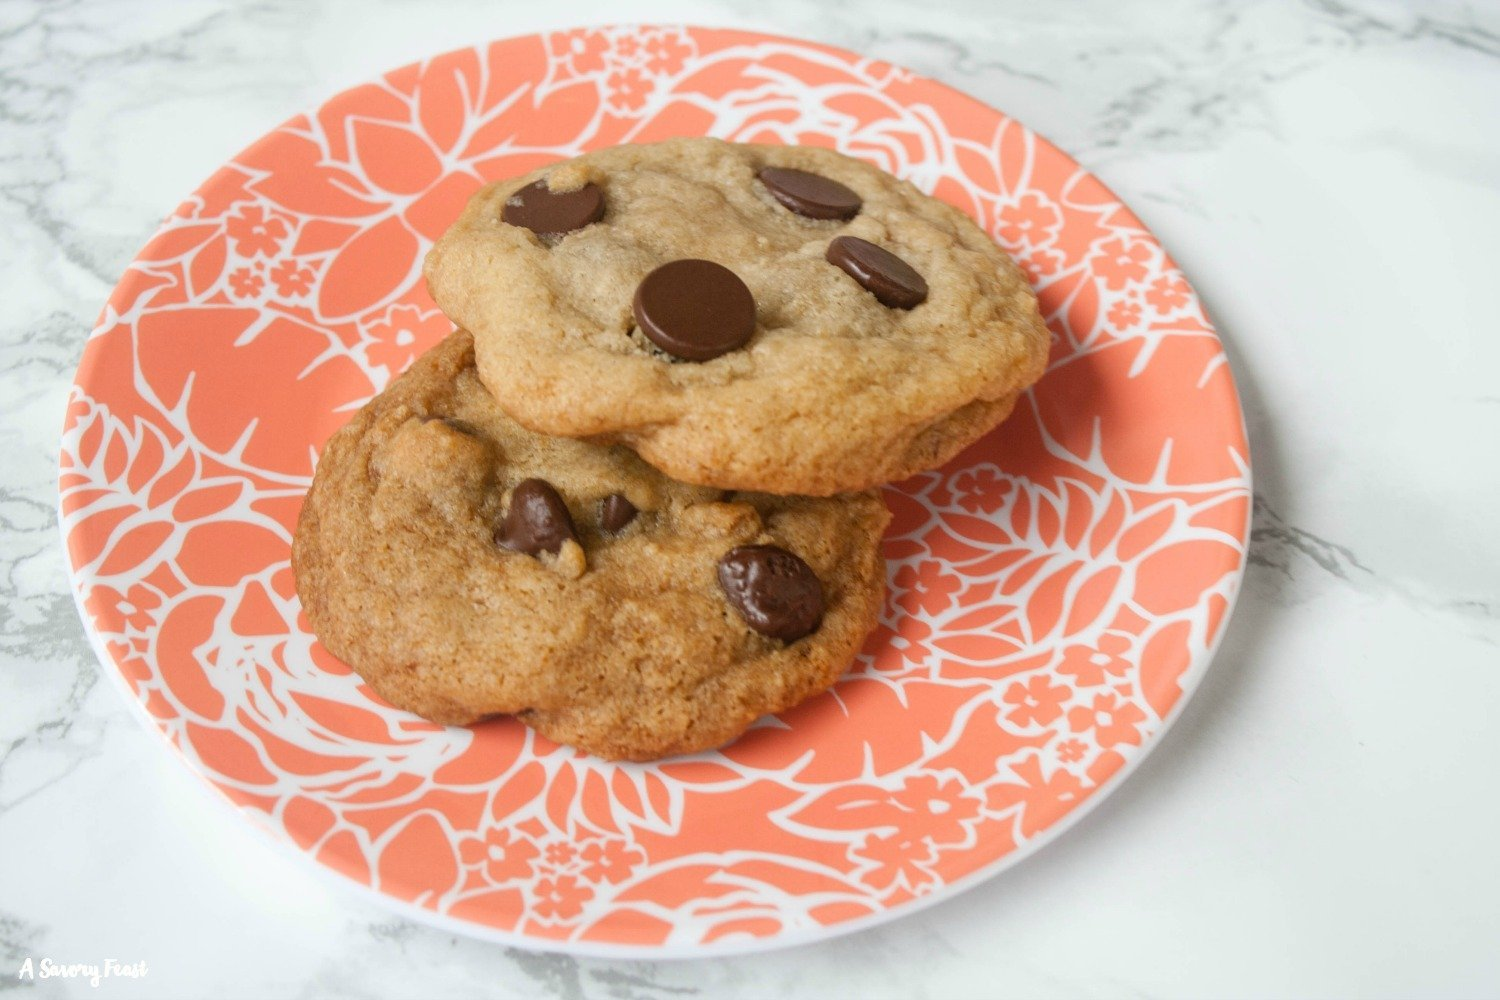 Help yourself to a couple of these vegan chocolate chip cookies!